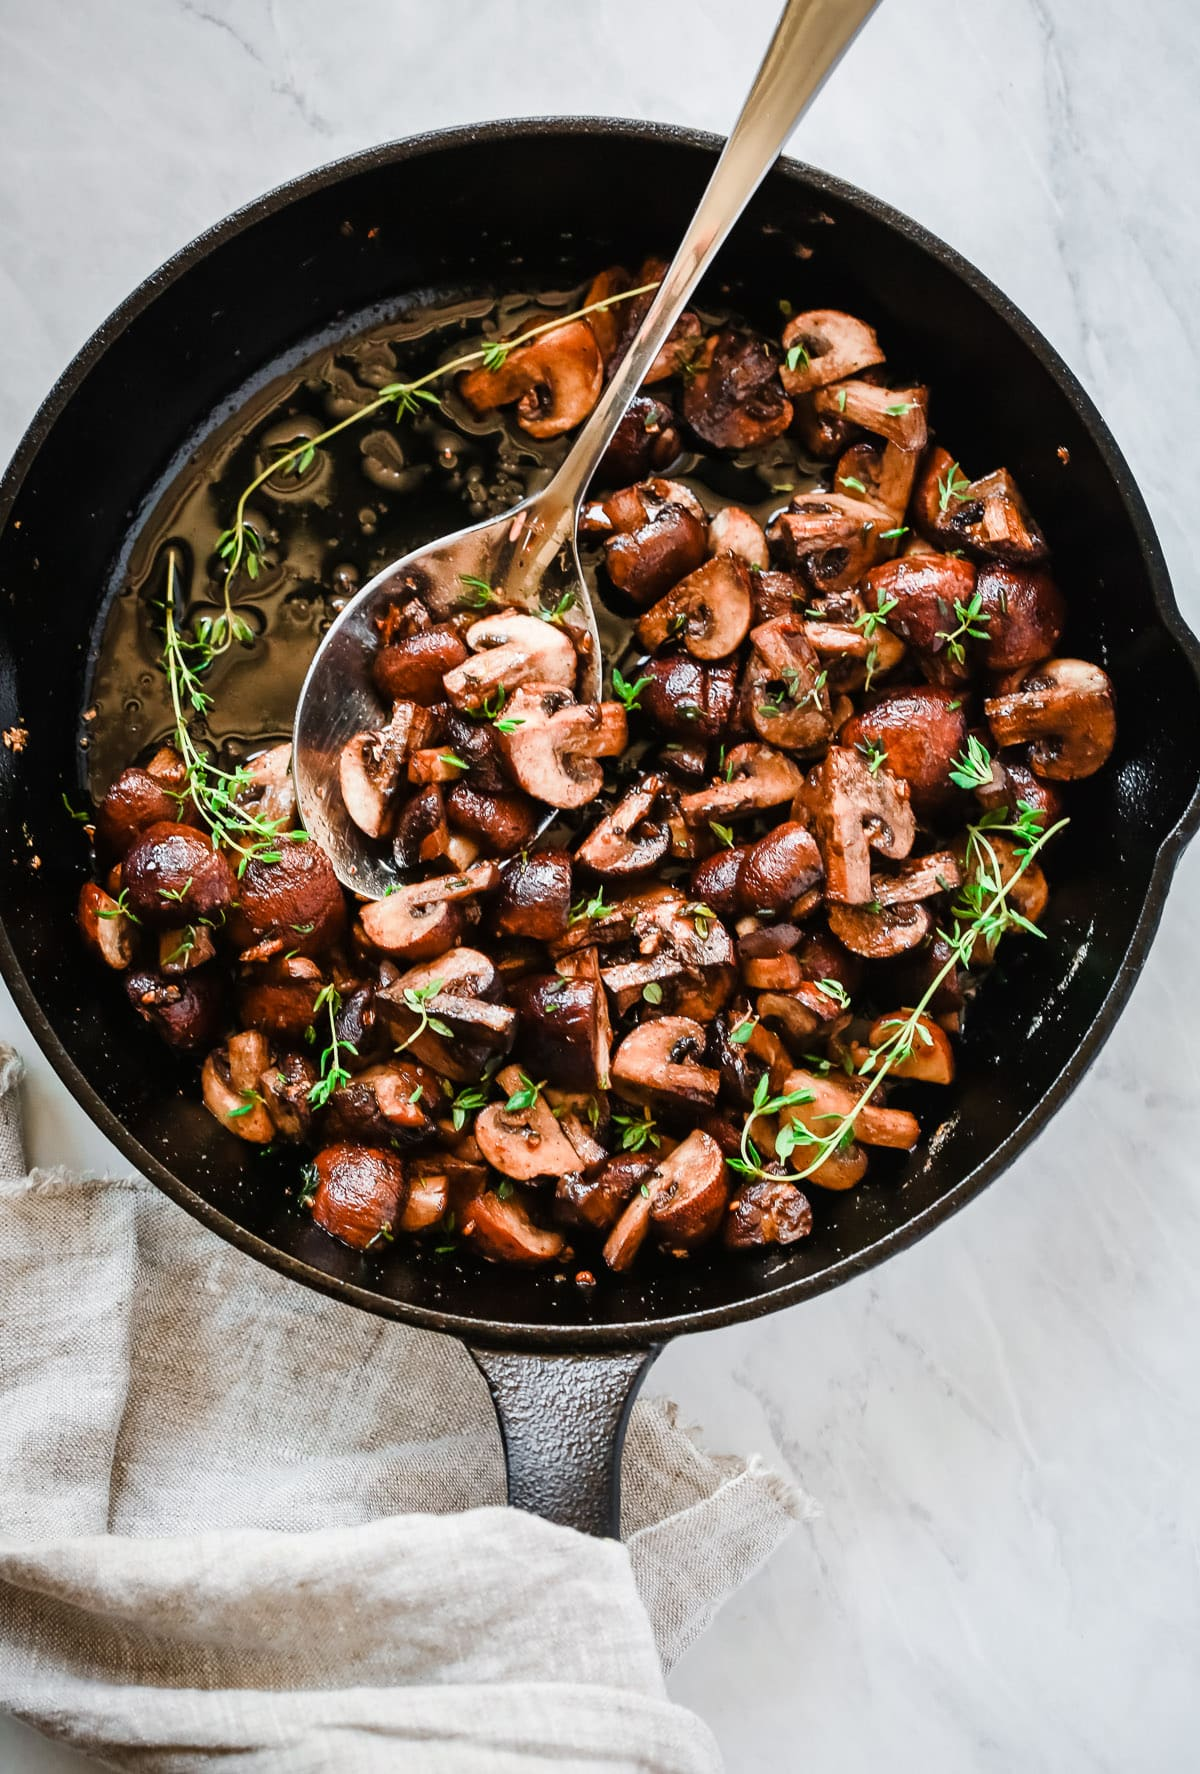 Overhead photo of a cast iron pan with garlic butter mushrooms inside.